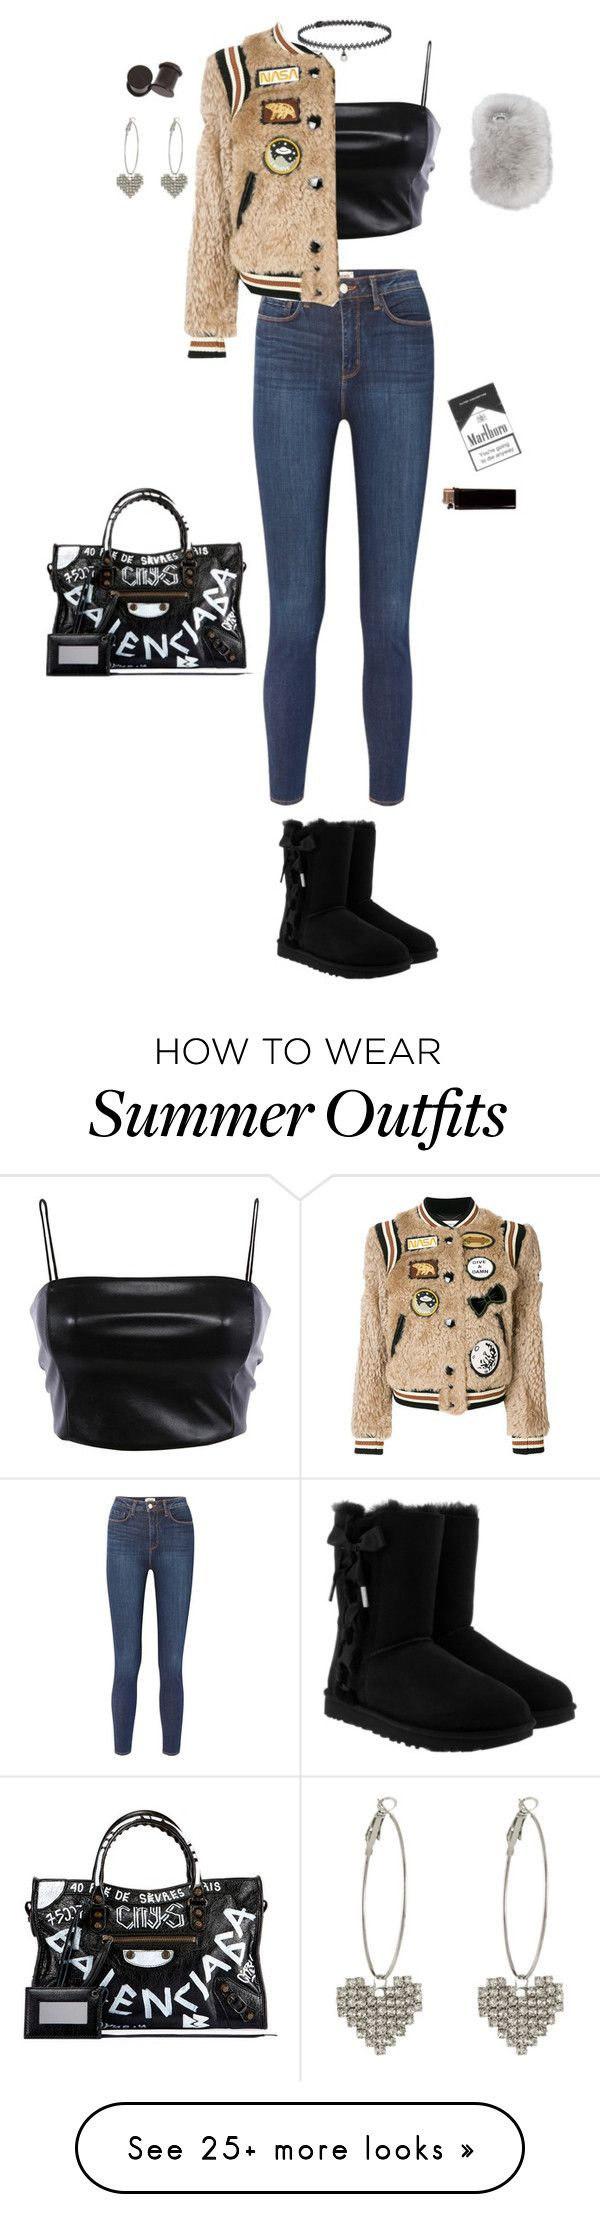 "6e9368b56d8 Summer Outfits   ""My Outfit 9"" by punk-babe-31 on Polyvore featuring  L Agence"